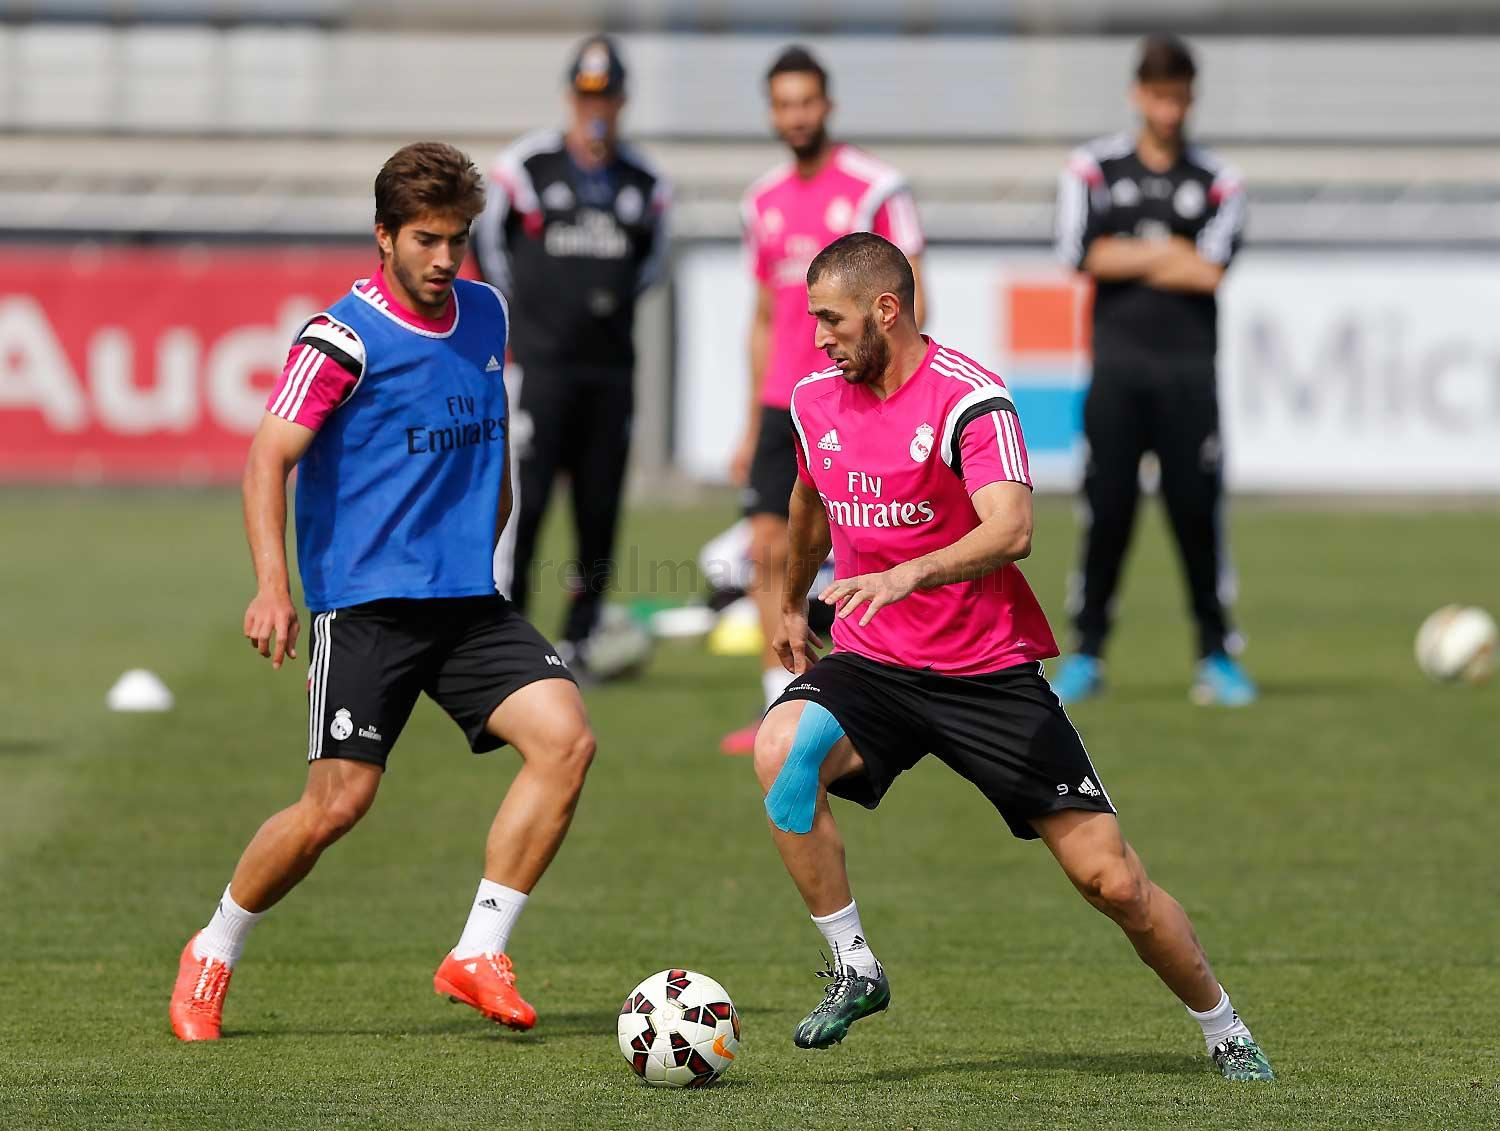 Real Madrid - Entrenamiento del Real Madrid - 07-05-2015